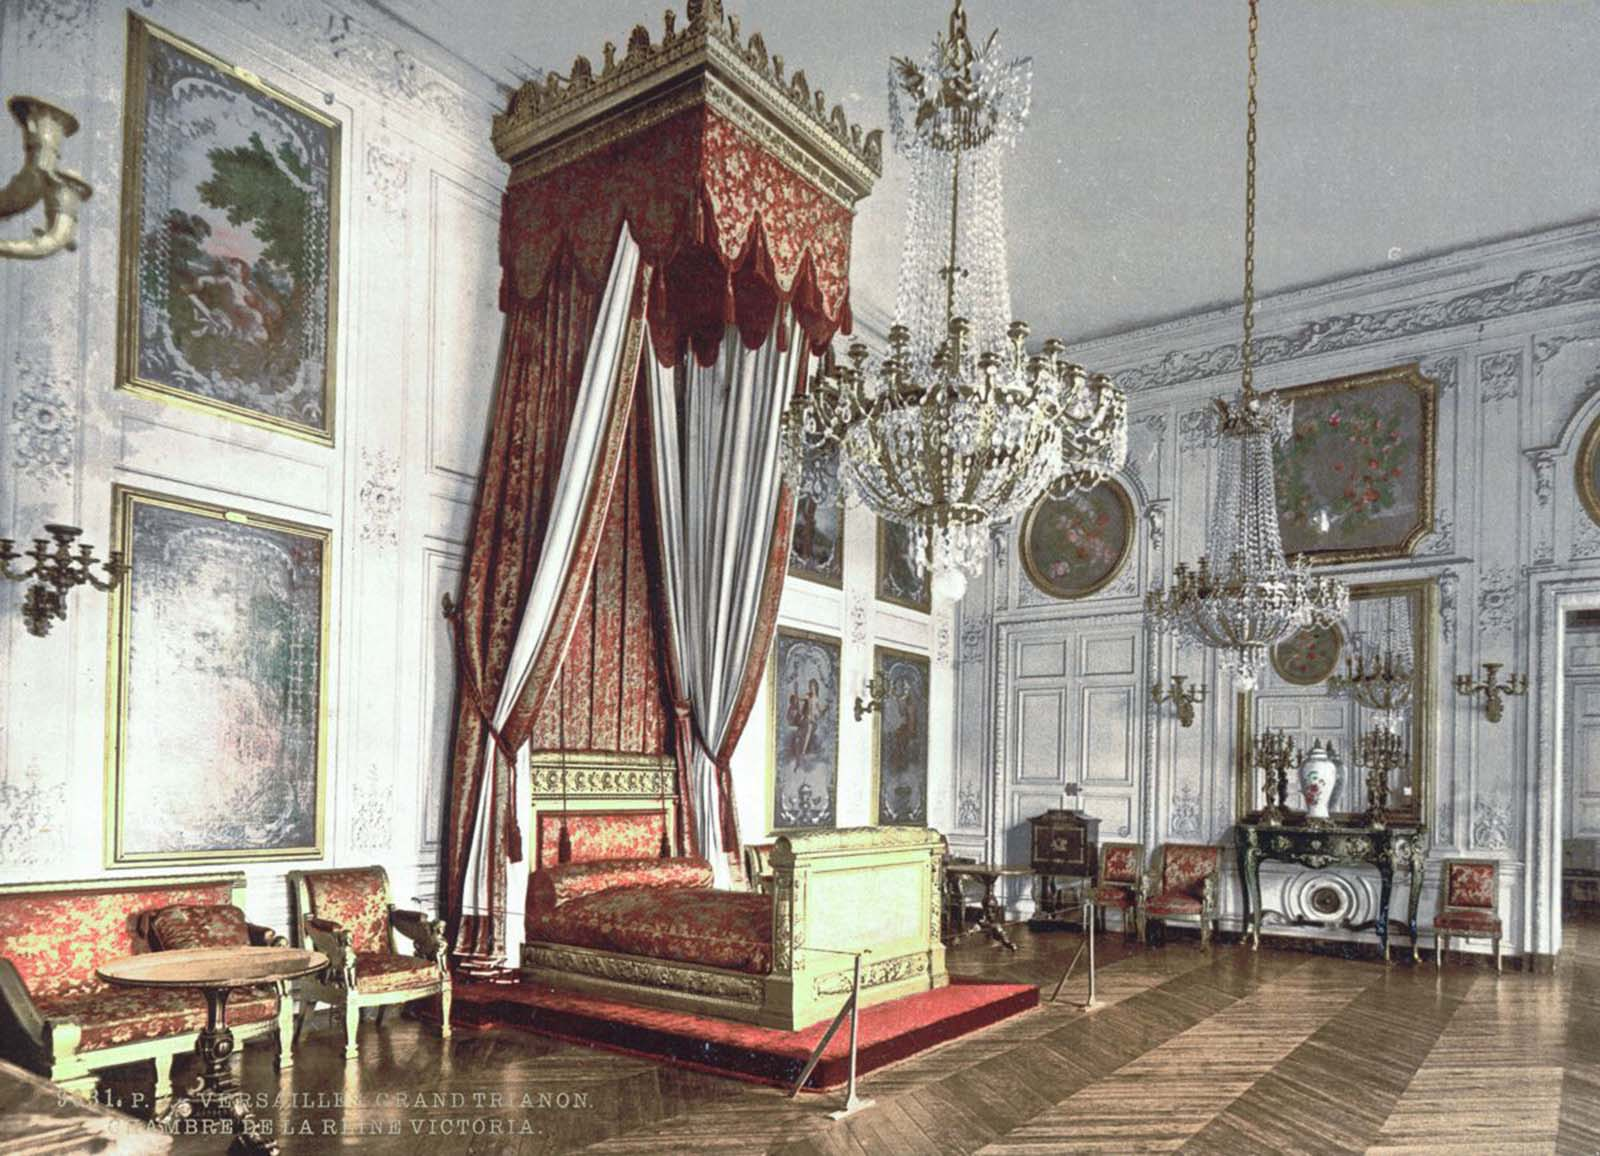 Grand Trianon, chamber of Queen Victoria, Versailles.